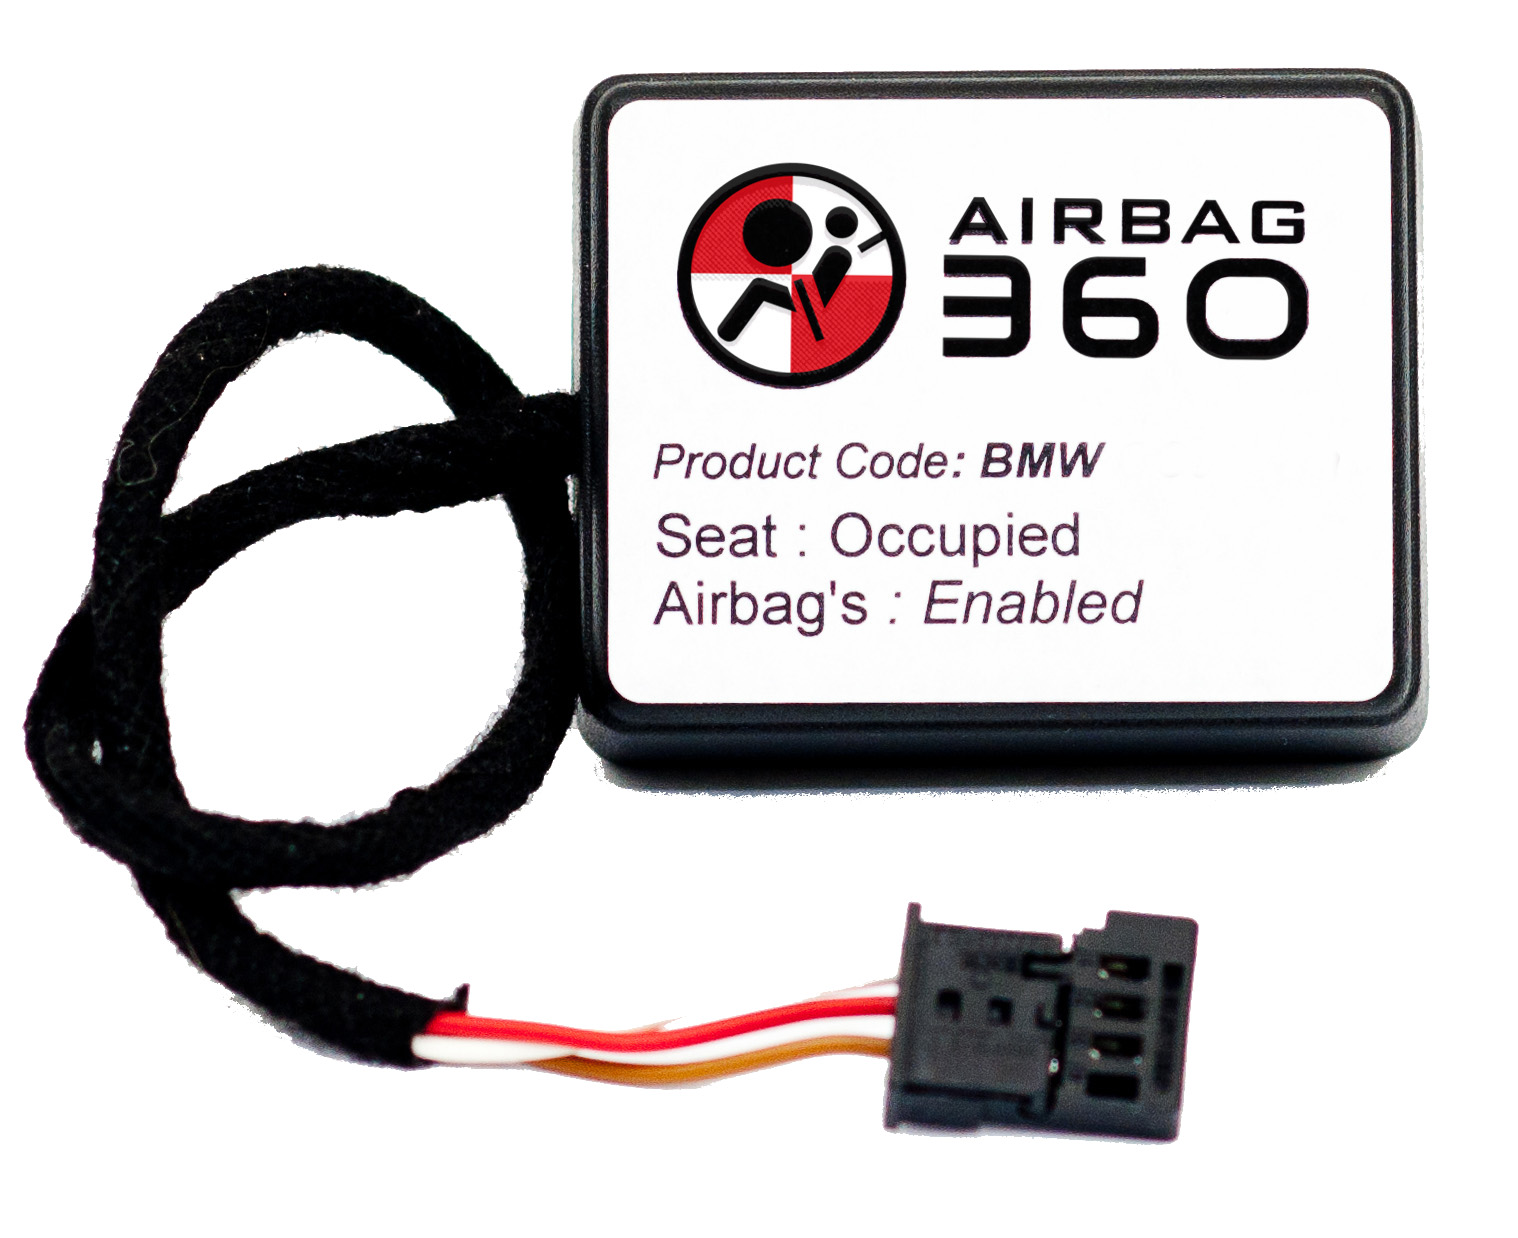 BMW 3 SERIES E90, E91,E92,E93 PASSENGER OCCUPANCY SEAT SENSOR, EMULATOR,  BYPASS UNIT